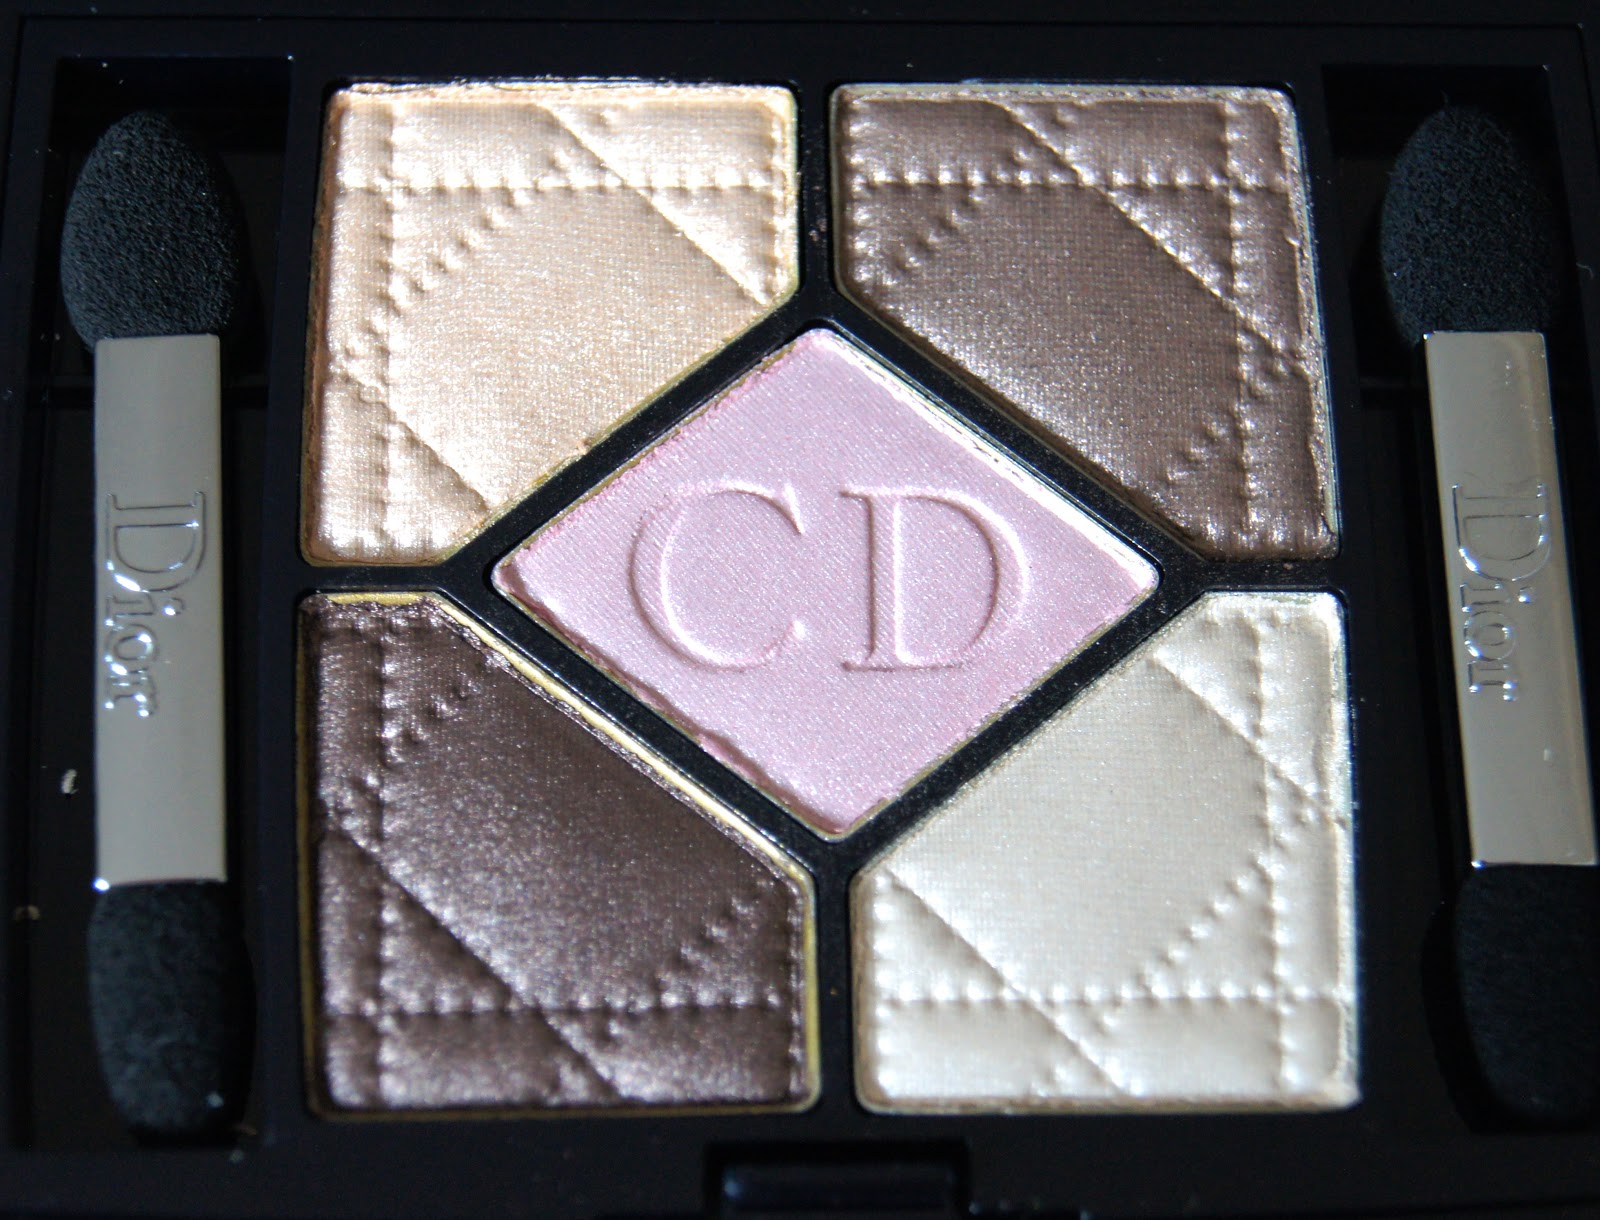 dior 5 couleurs 609 earth reflection eyeshadow palette review